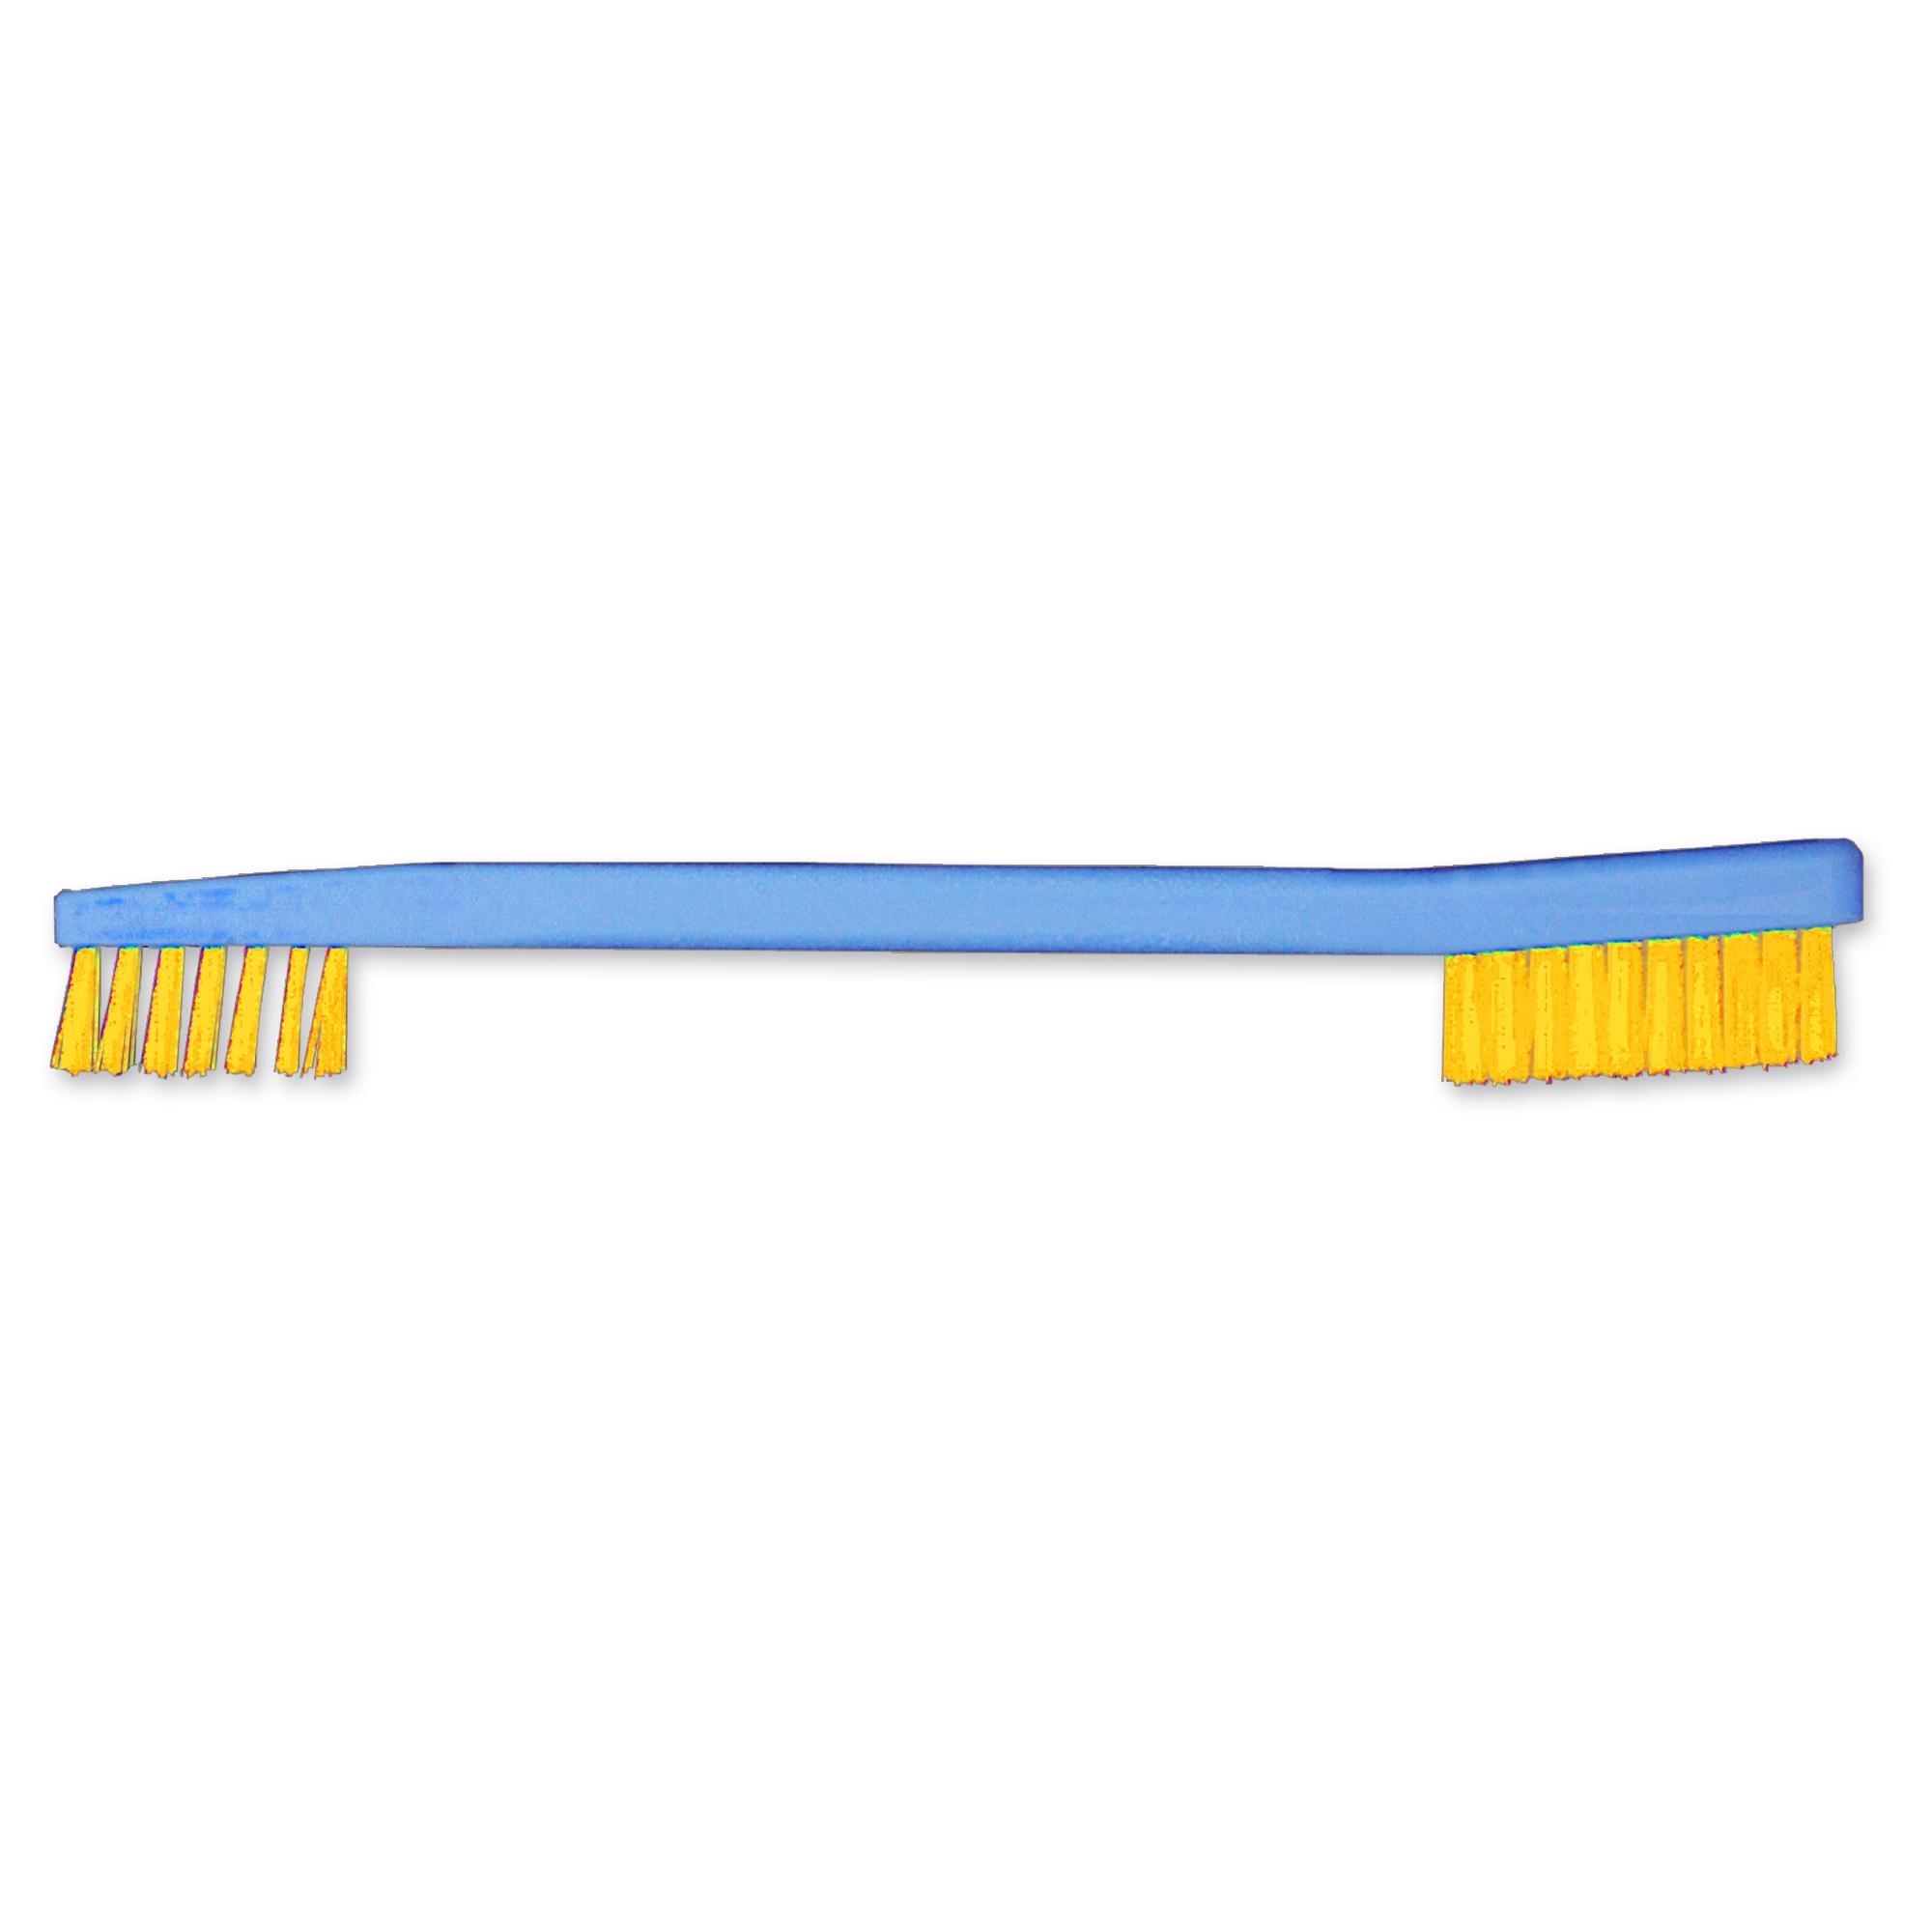 Cleaning Brush Image